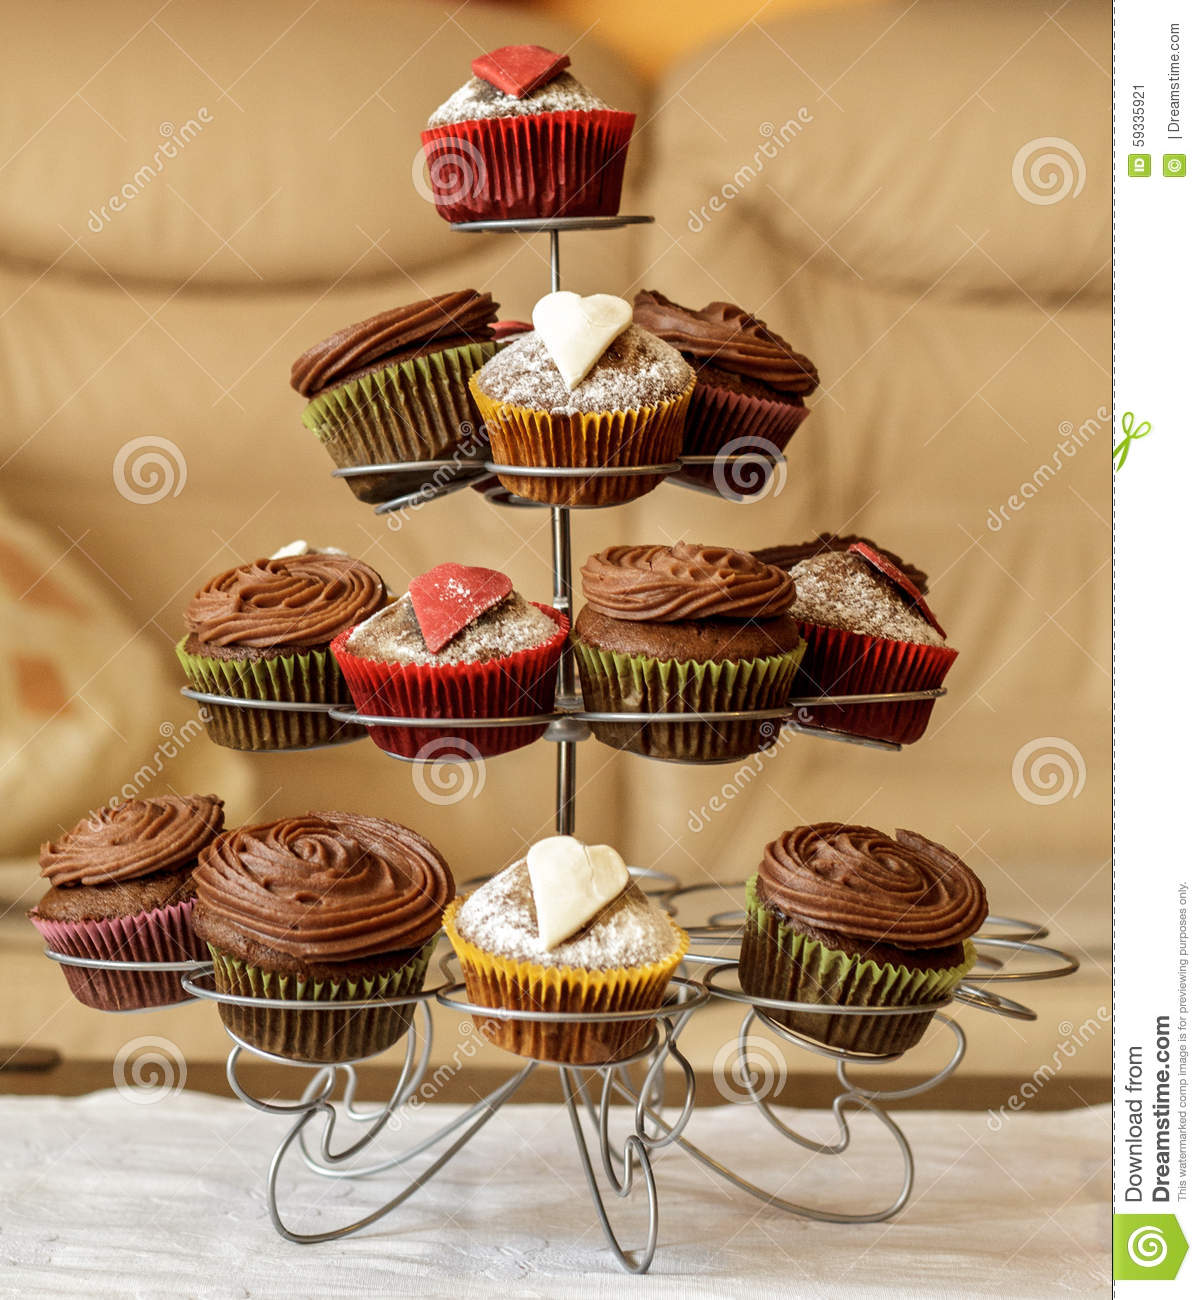 Beautiful cupcakes on a stand stock photo image 59335921 for Cupcake stand plans